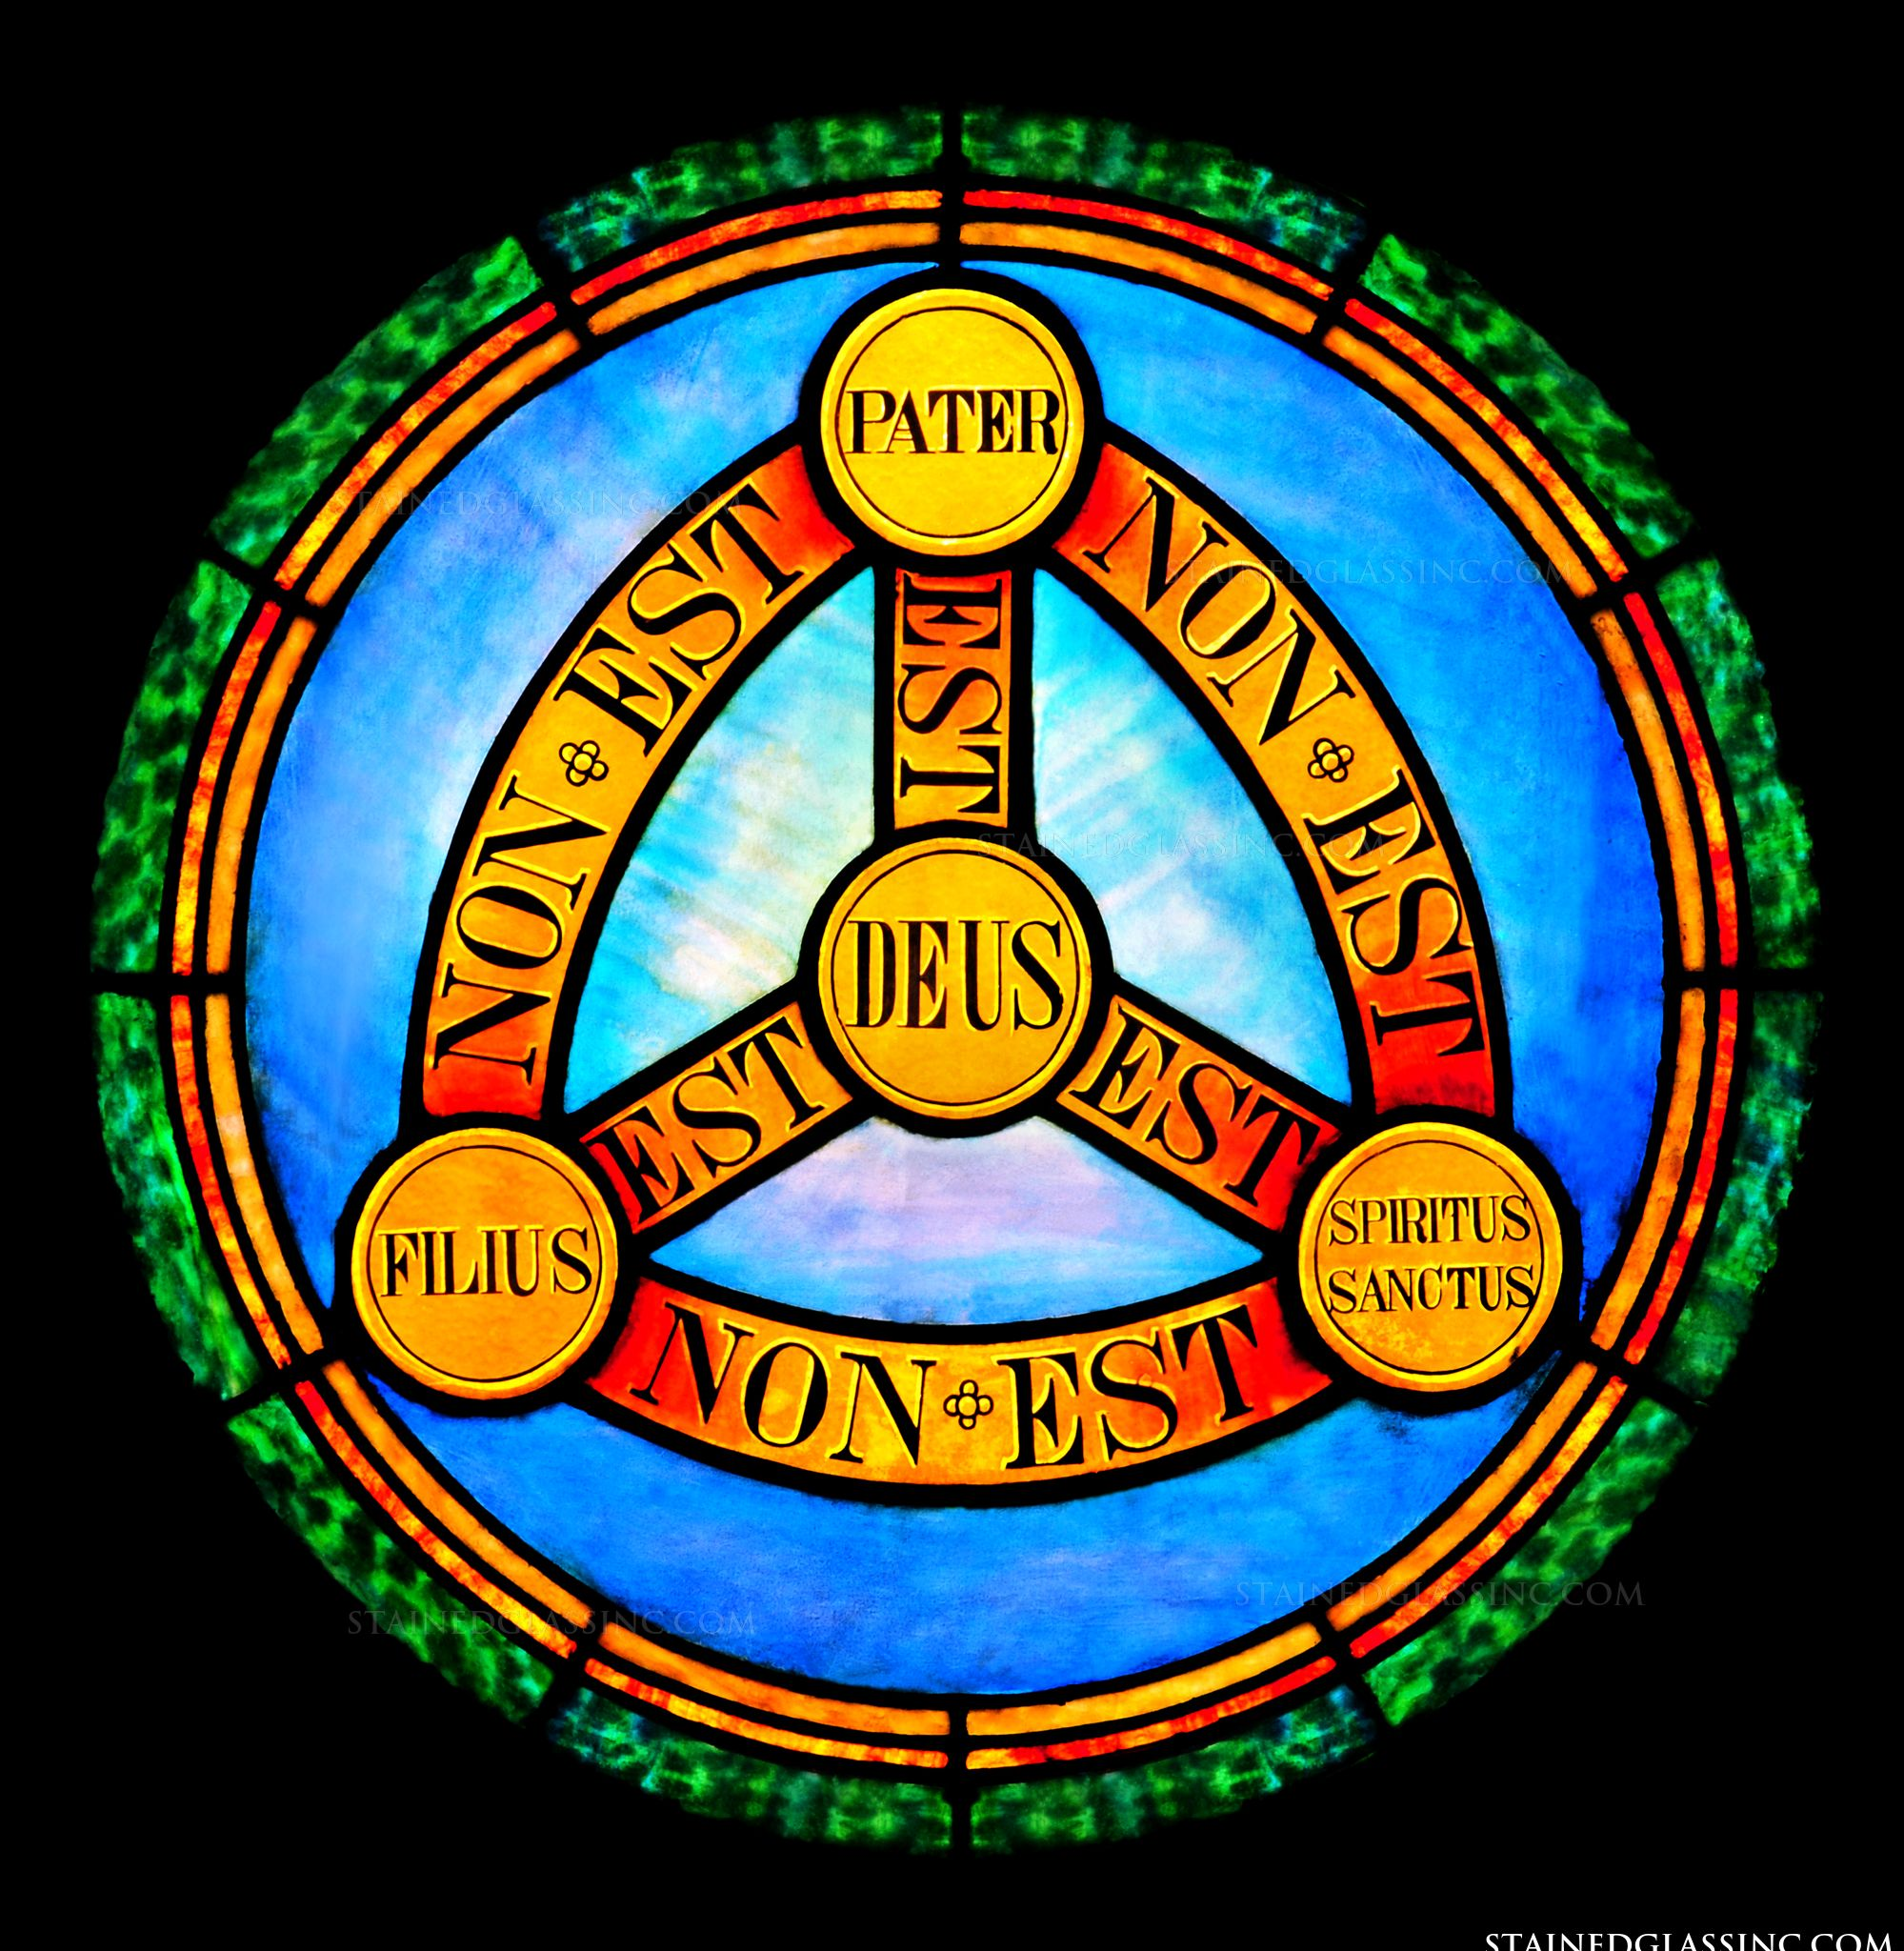 Stained glass of the Holy Trinity symbol